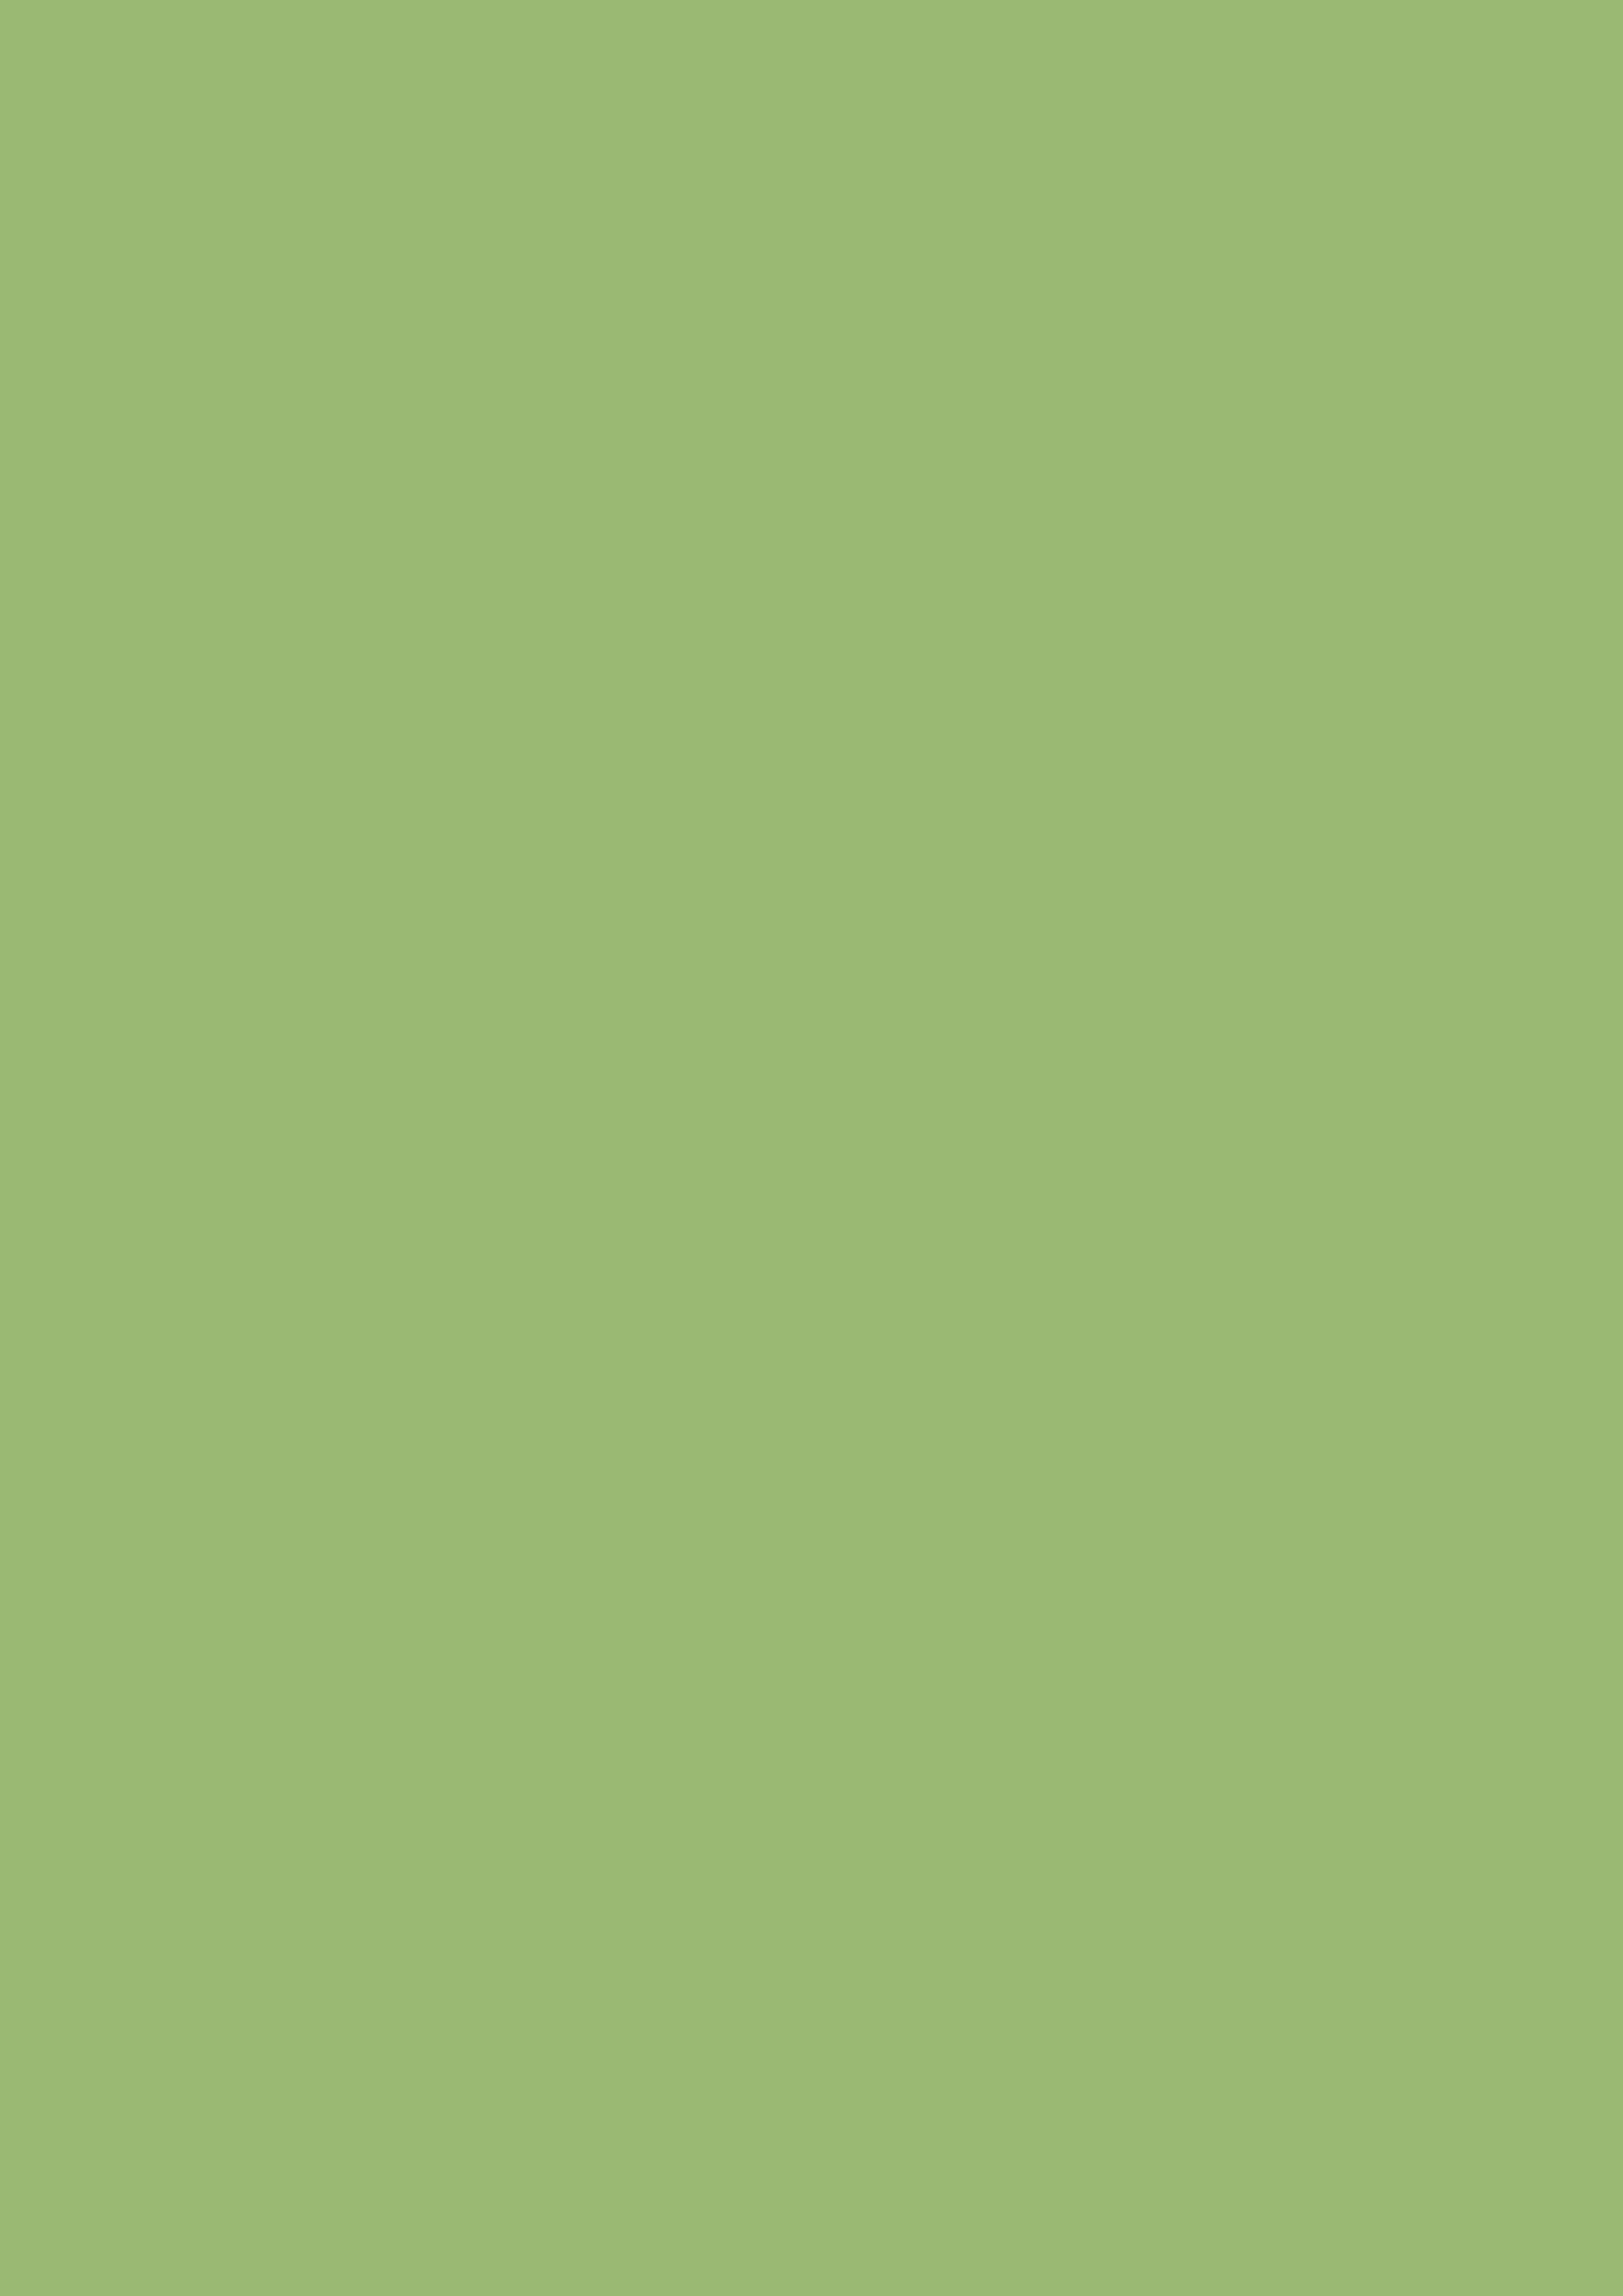 2480x3508 Olivine Solid Color Background